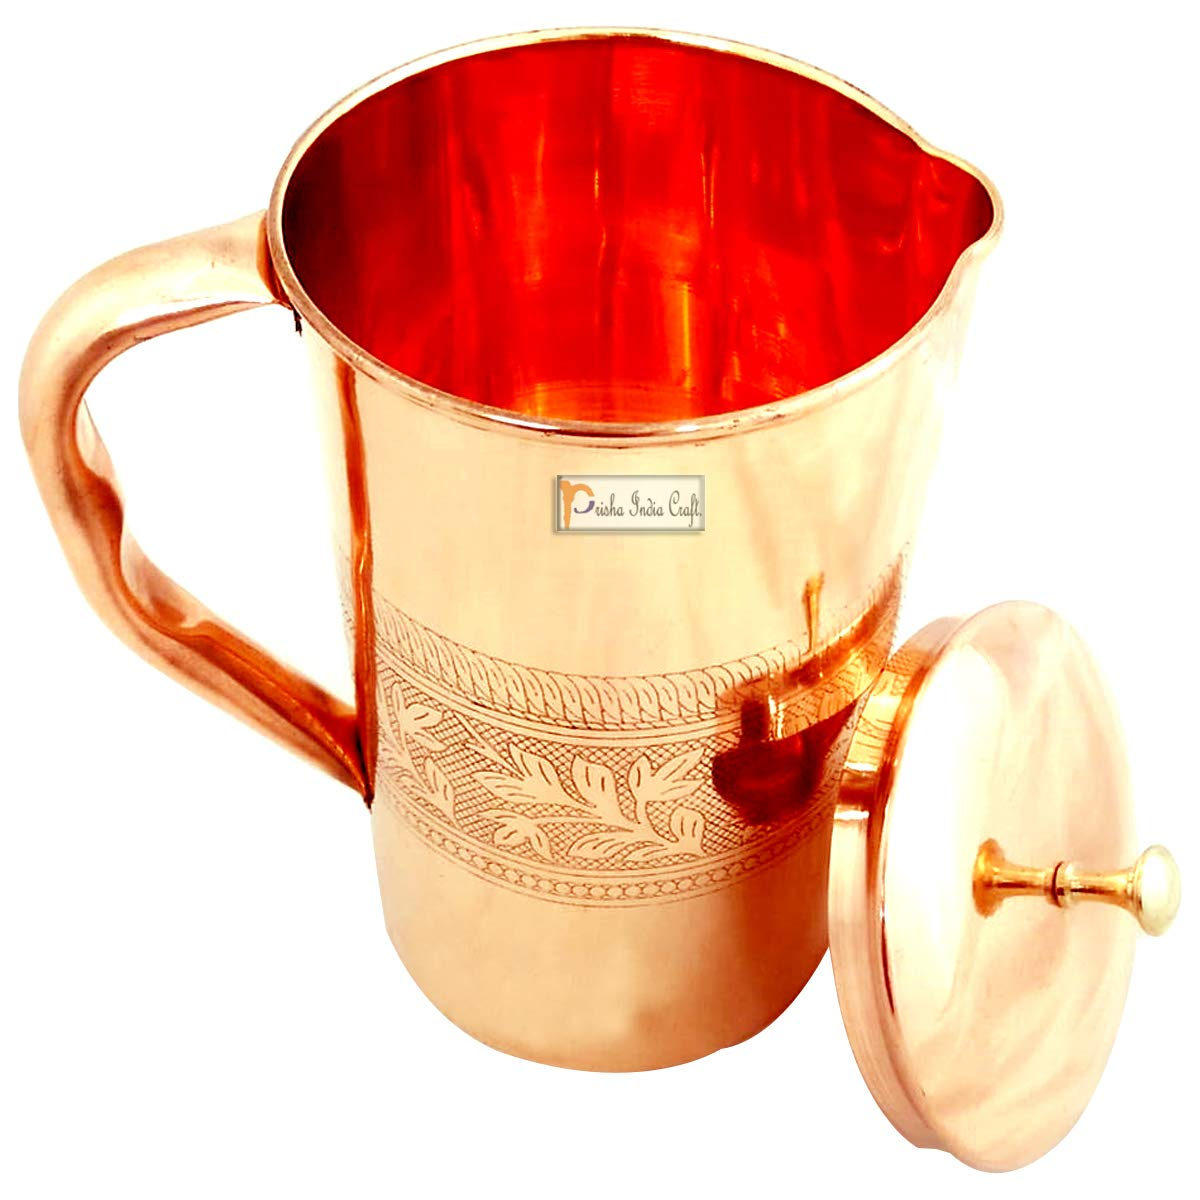 Prisha India Pure Copper Jug Pitcher with Lid for Health Benefits Ayurveda Healing PRISHA INDIA CRAFT jug013